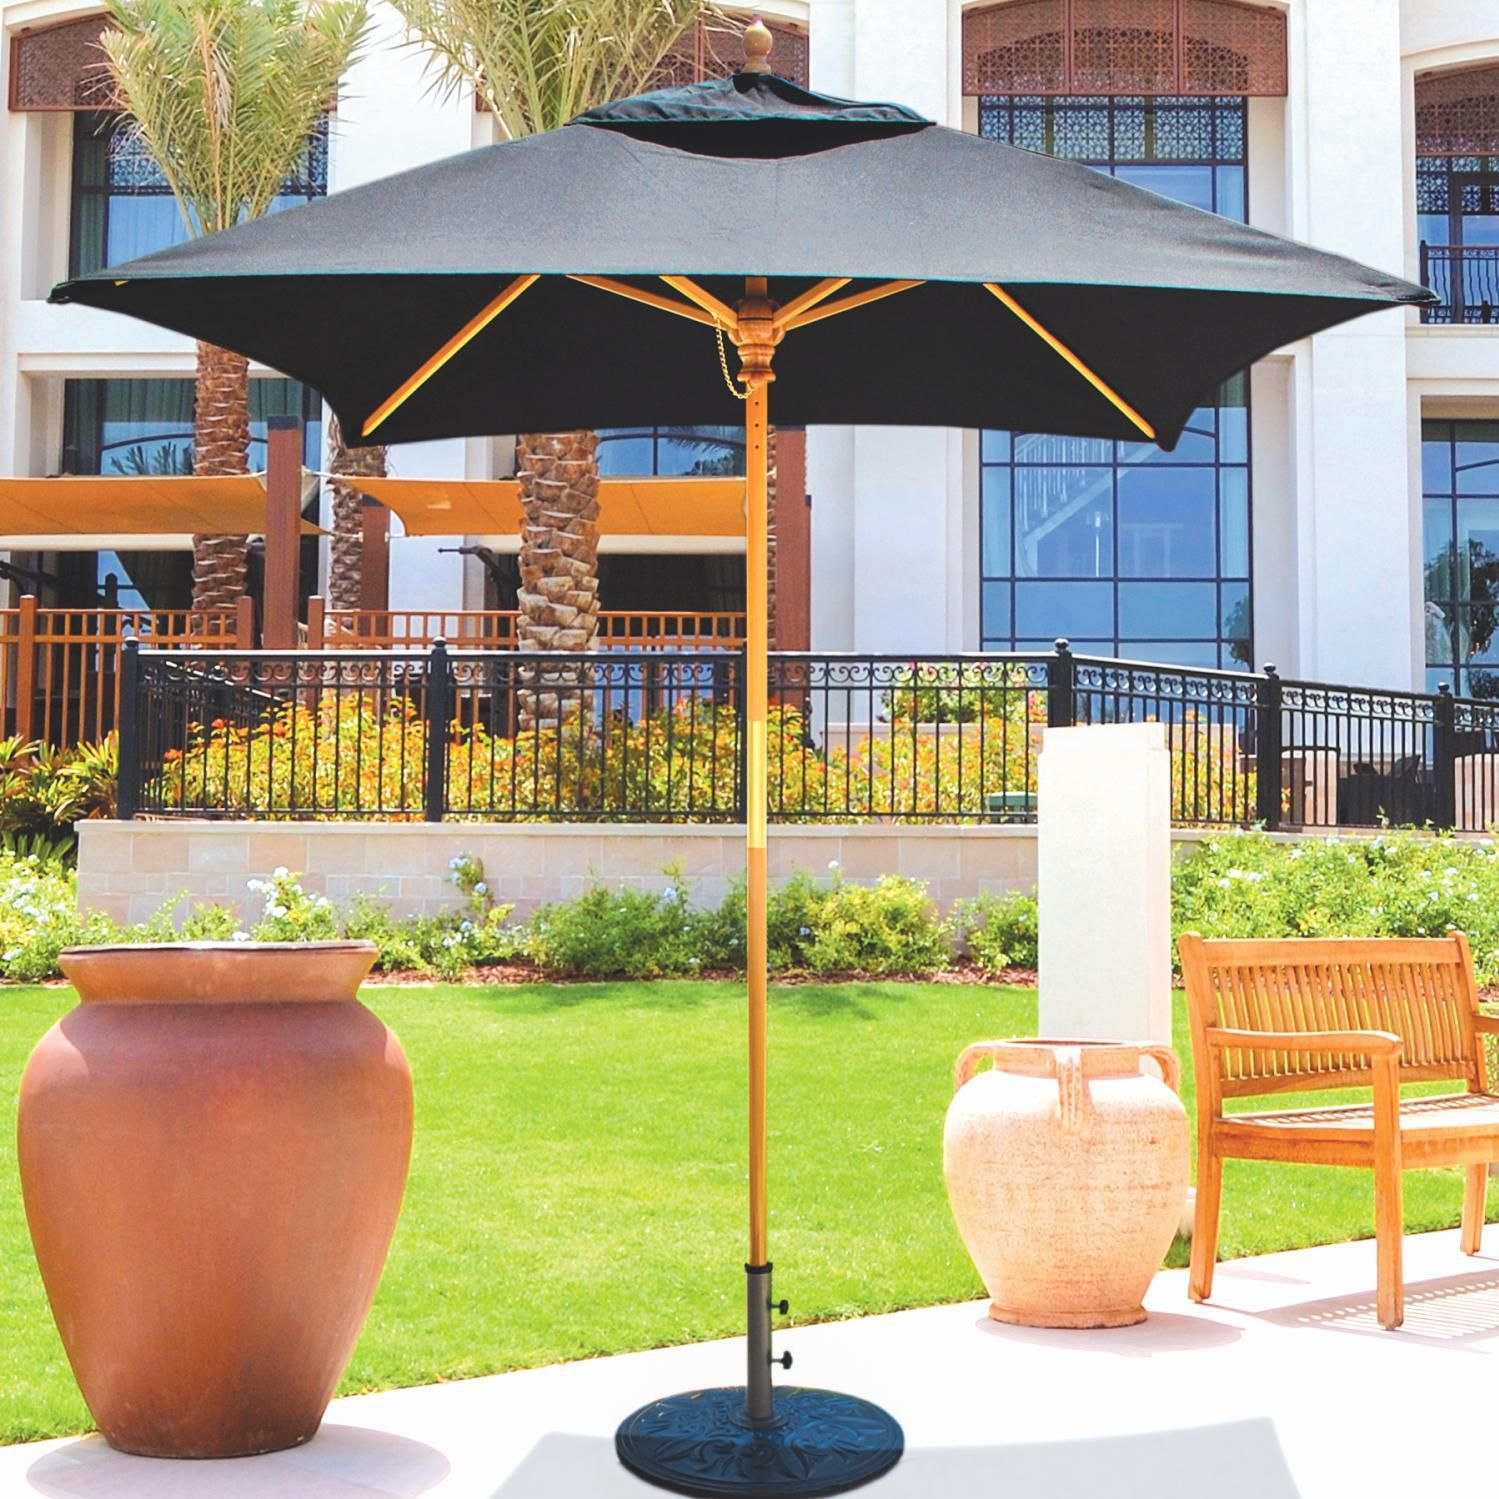 Galtech 6 Ft Wood Square Patio Umbrella With Manual Lift Light